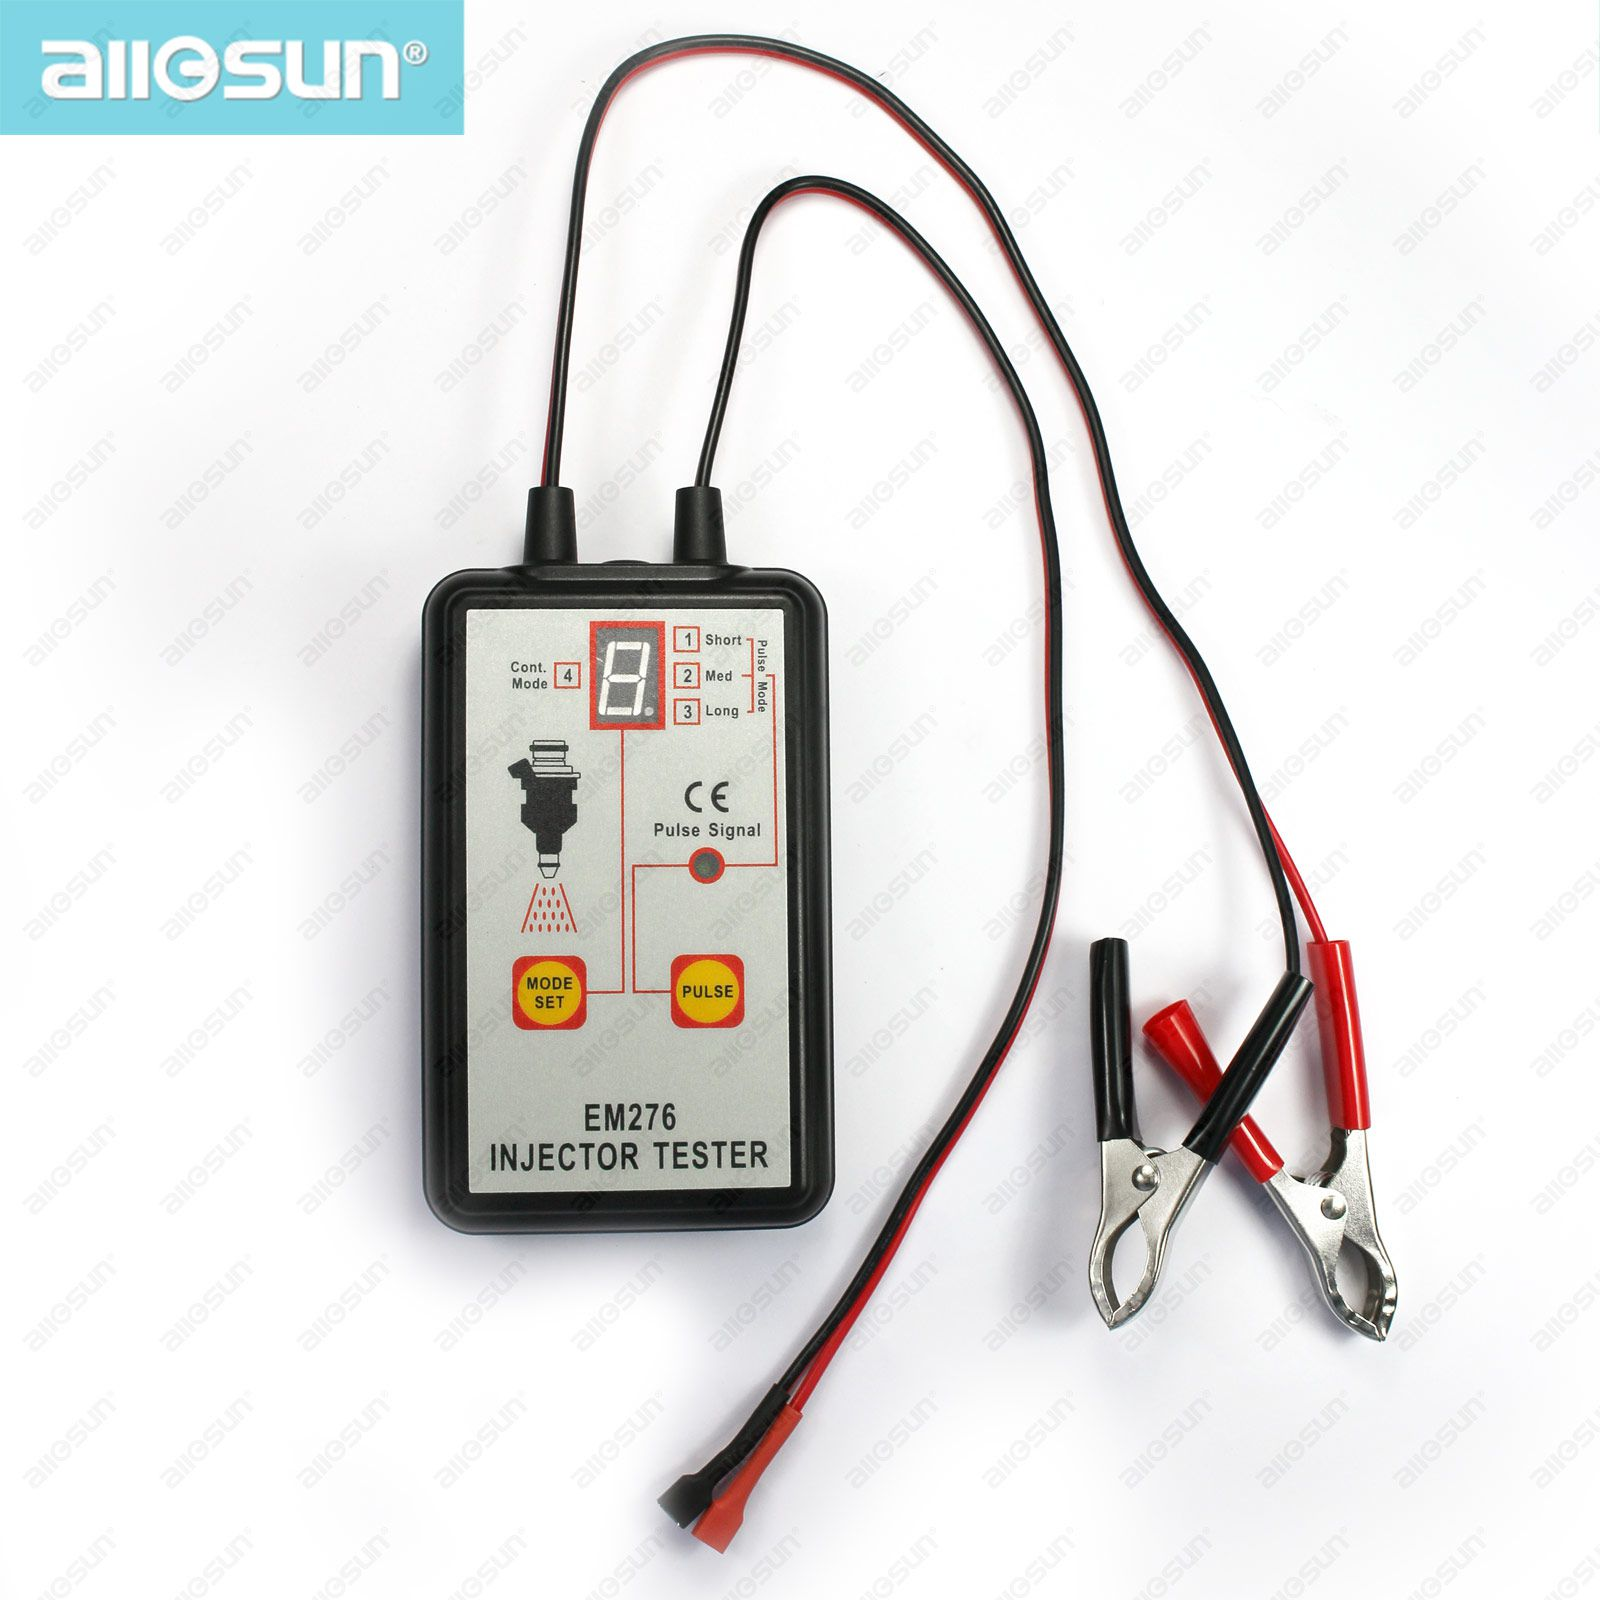 allsun Professional Fuel Injector Tester 4 pluse Modes Auto Injector Detector 12V Fuel System Tool Car Nozzle Tester Diagnosis Instrument